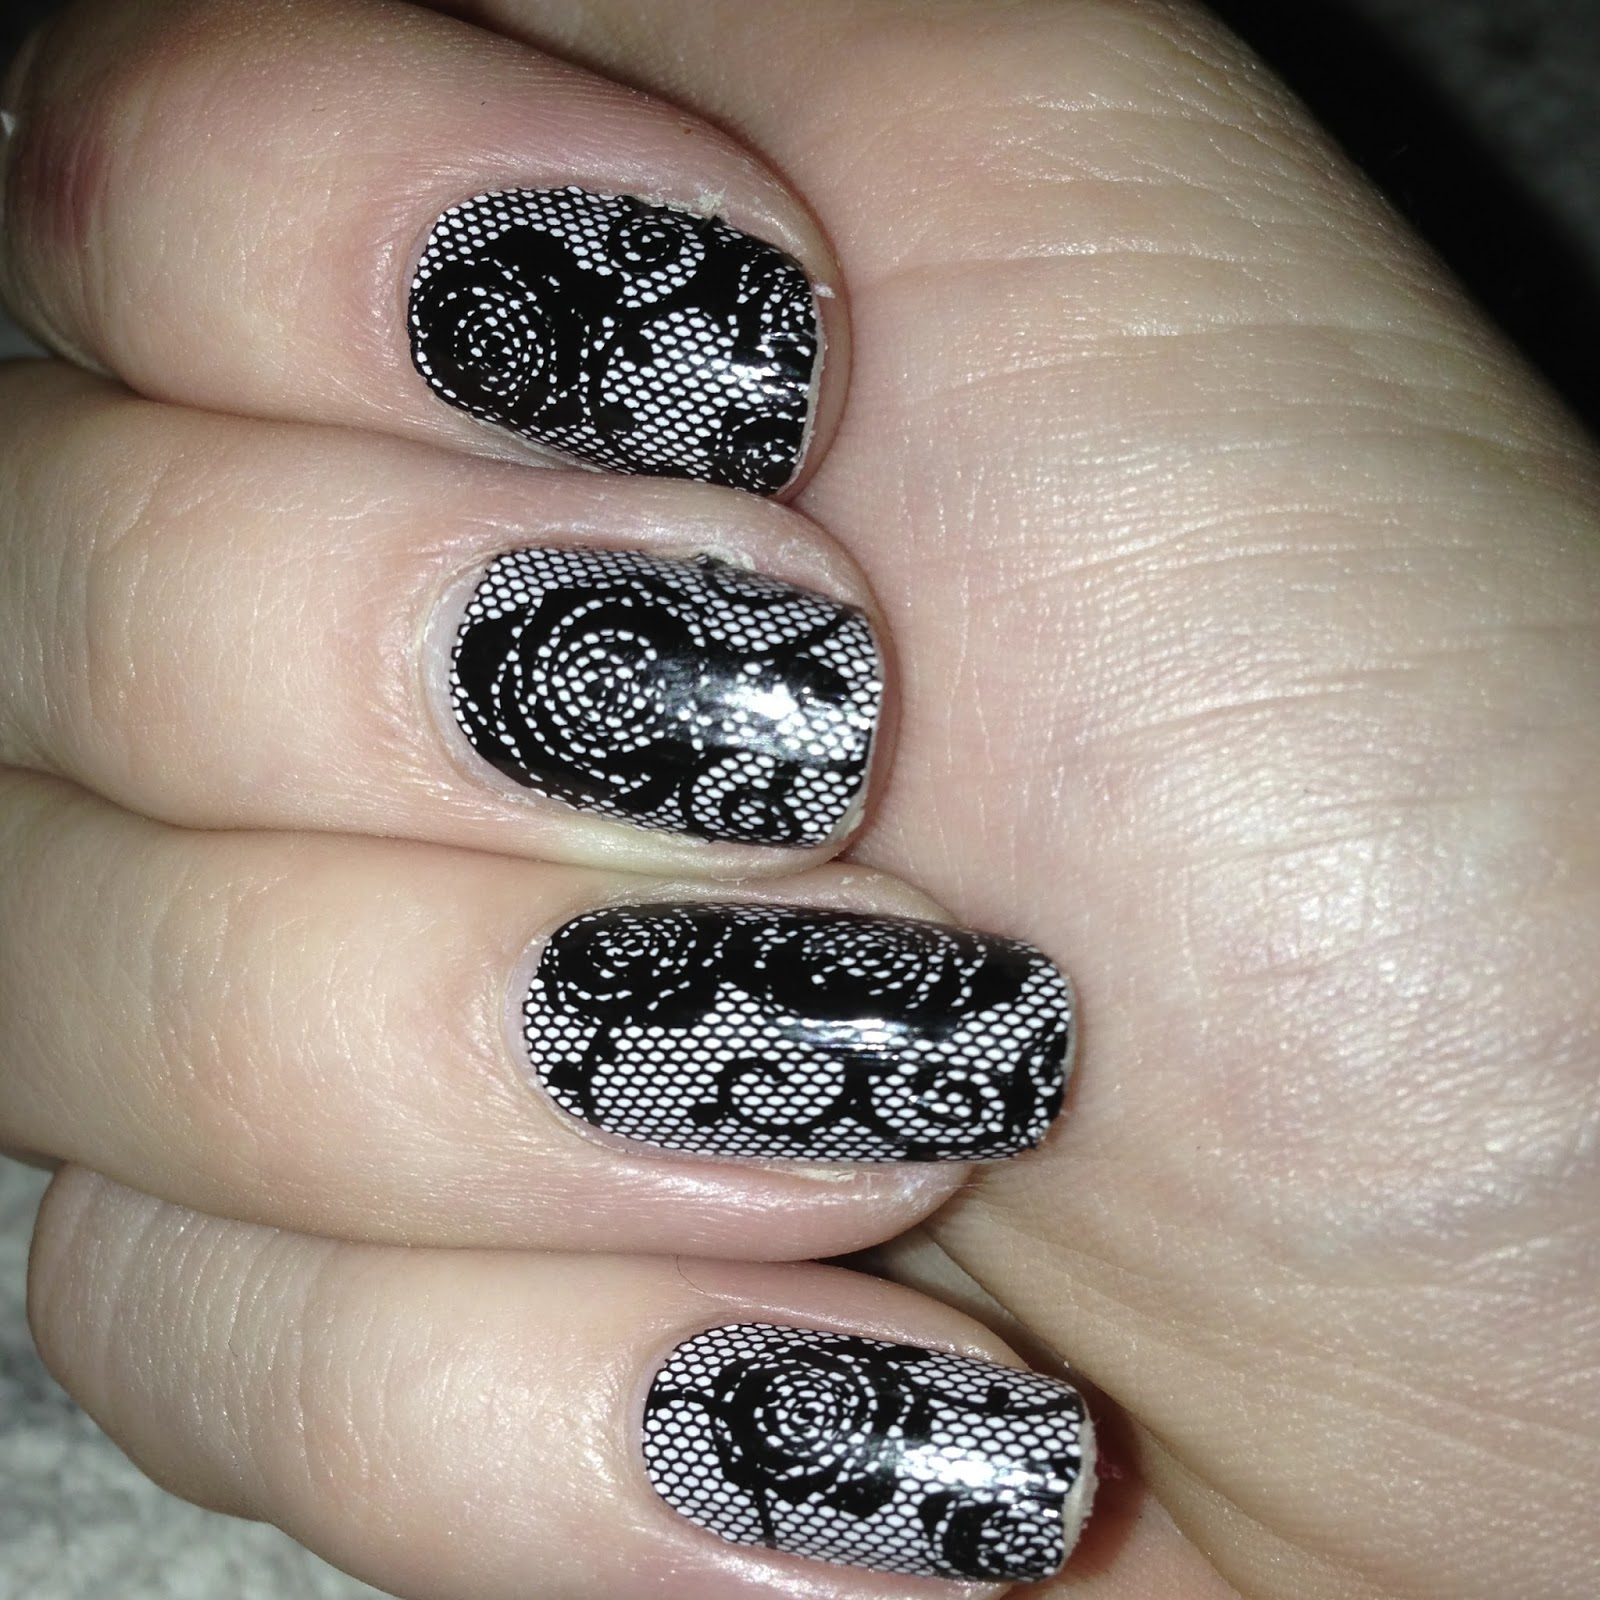 Science Nail Designs: The Science Of Beauty: July 2013